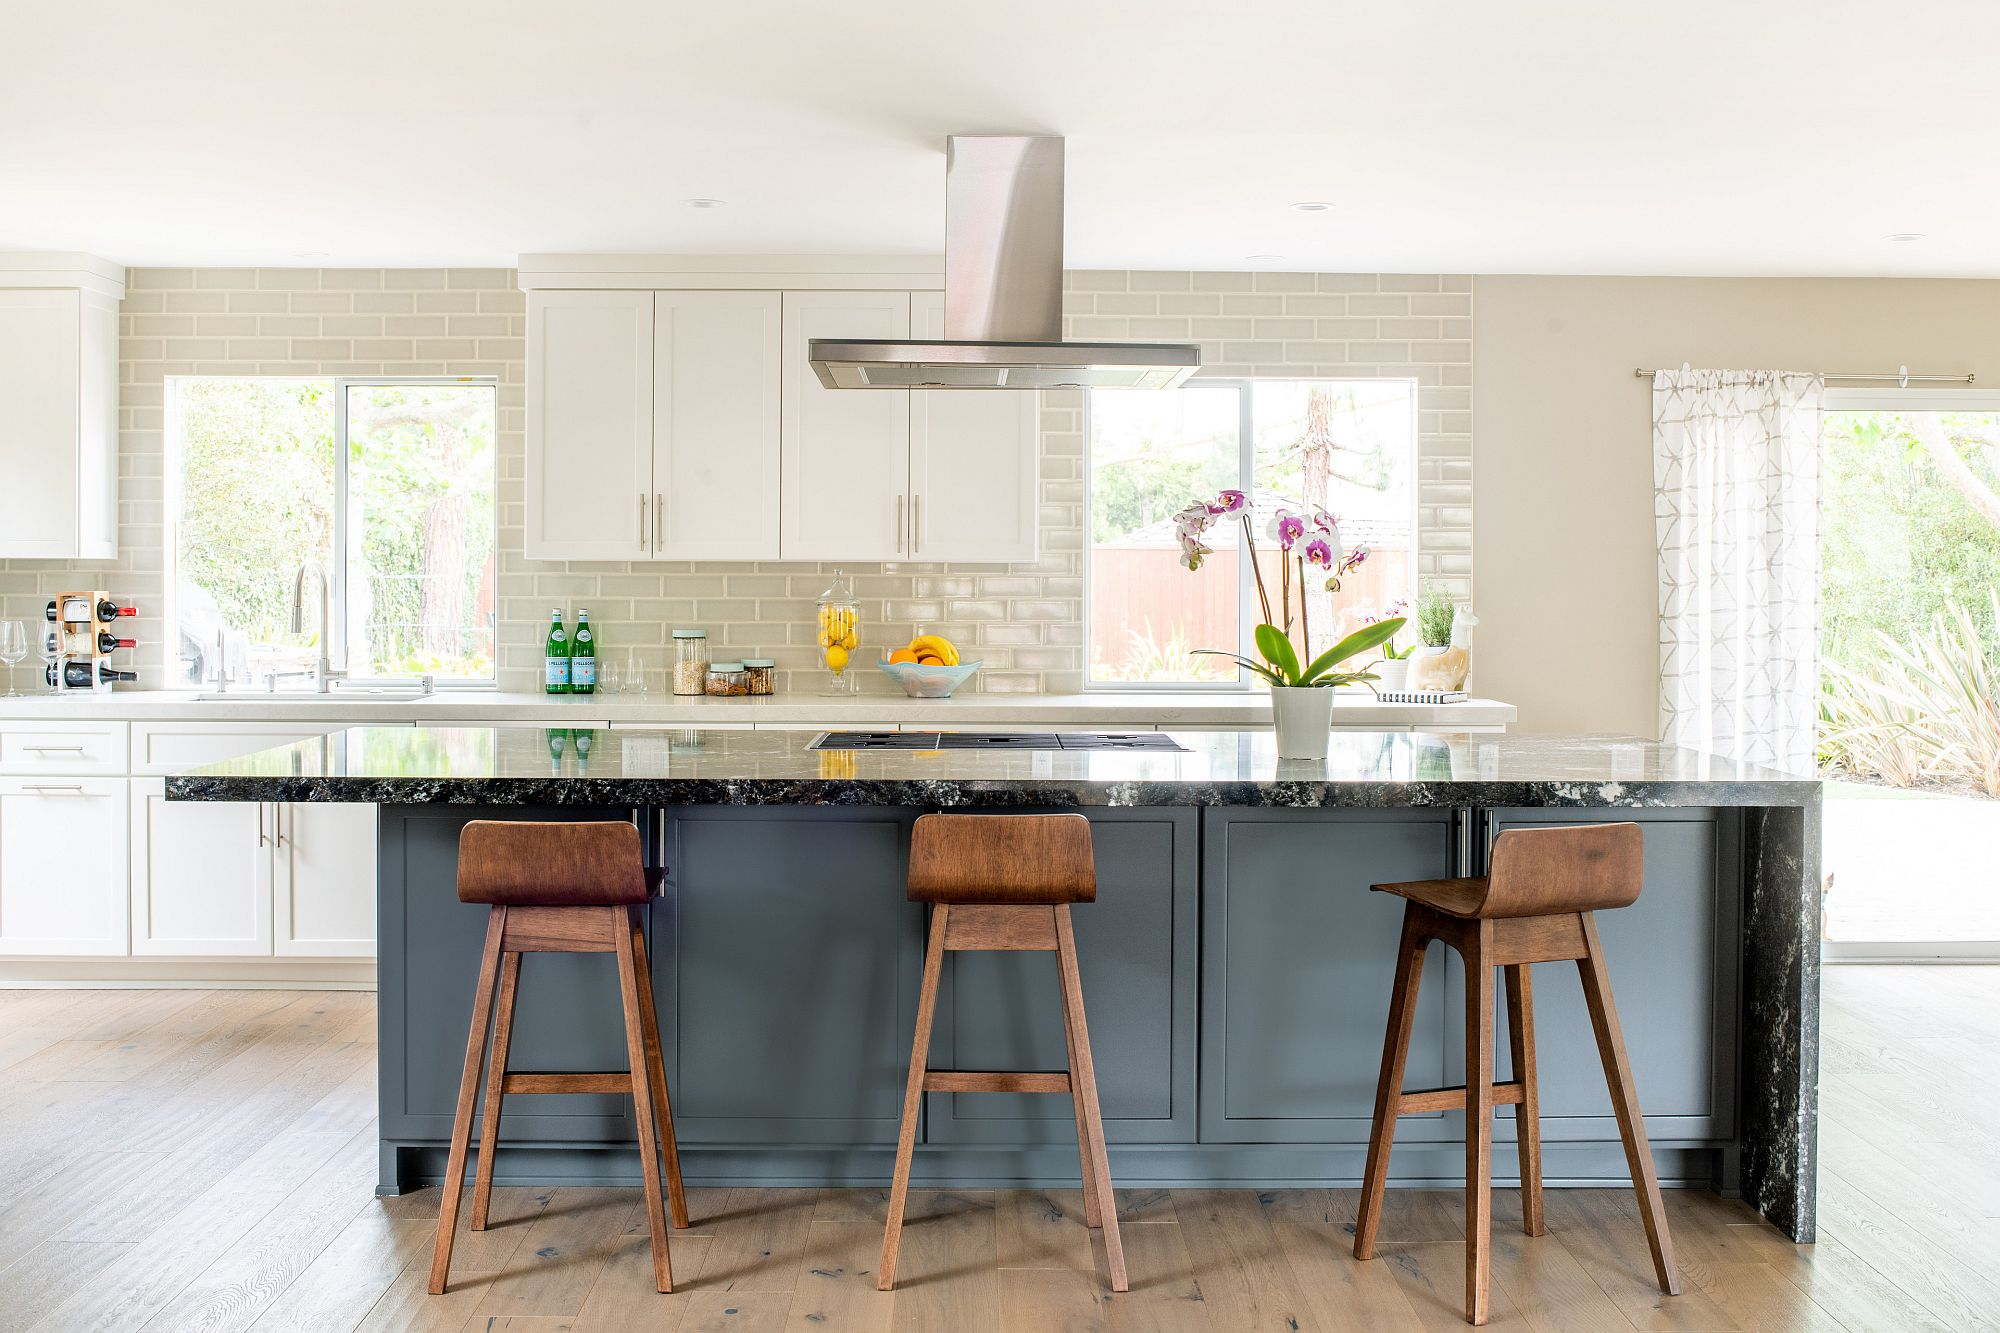 A touch of blue makes a big visual difference in the white kitchen with ample light